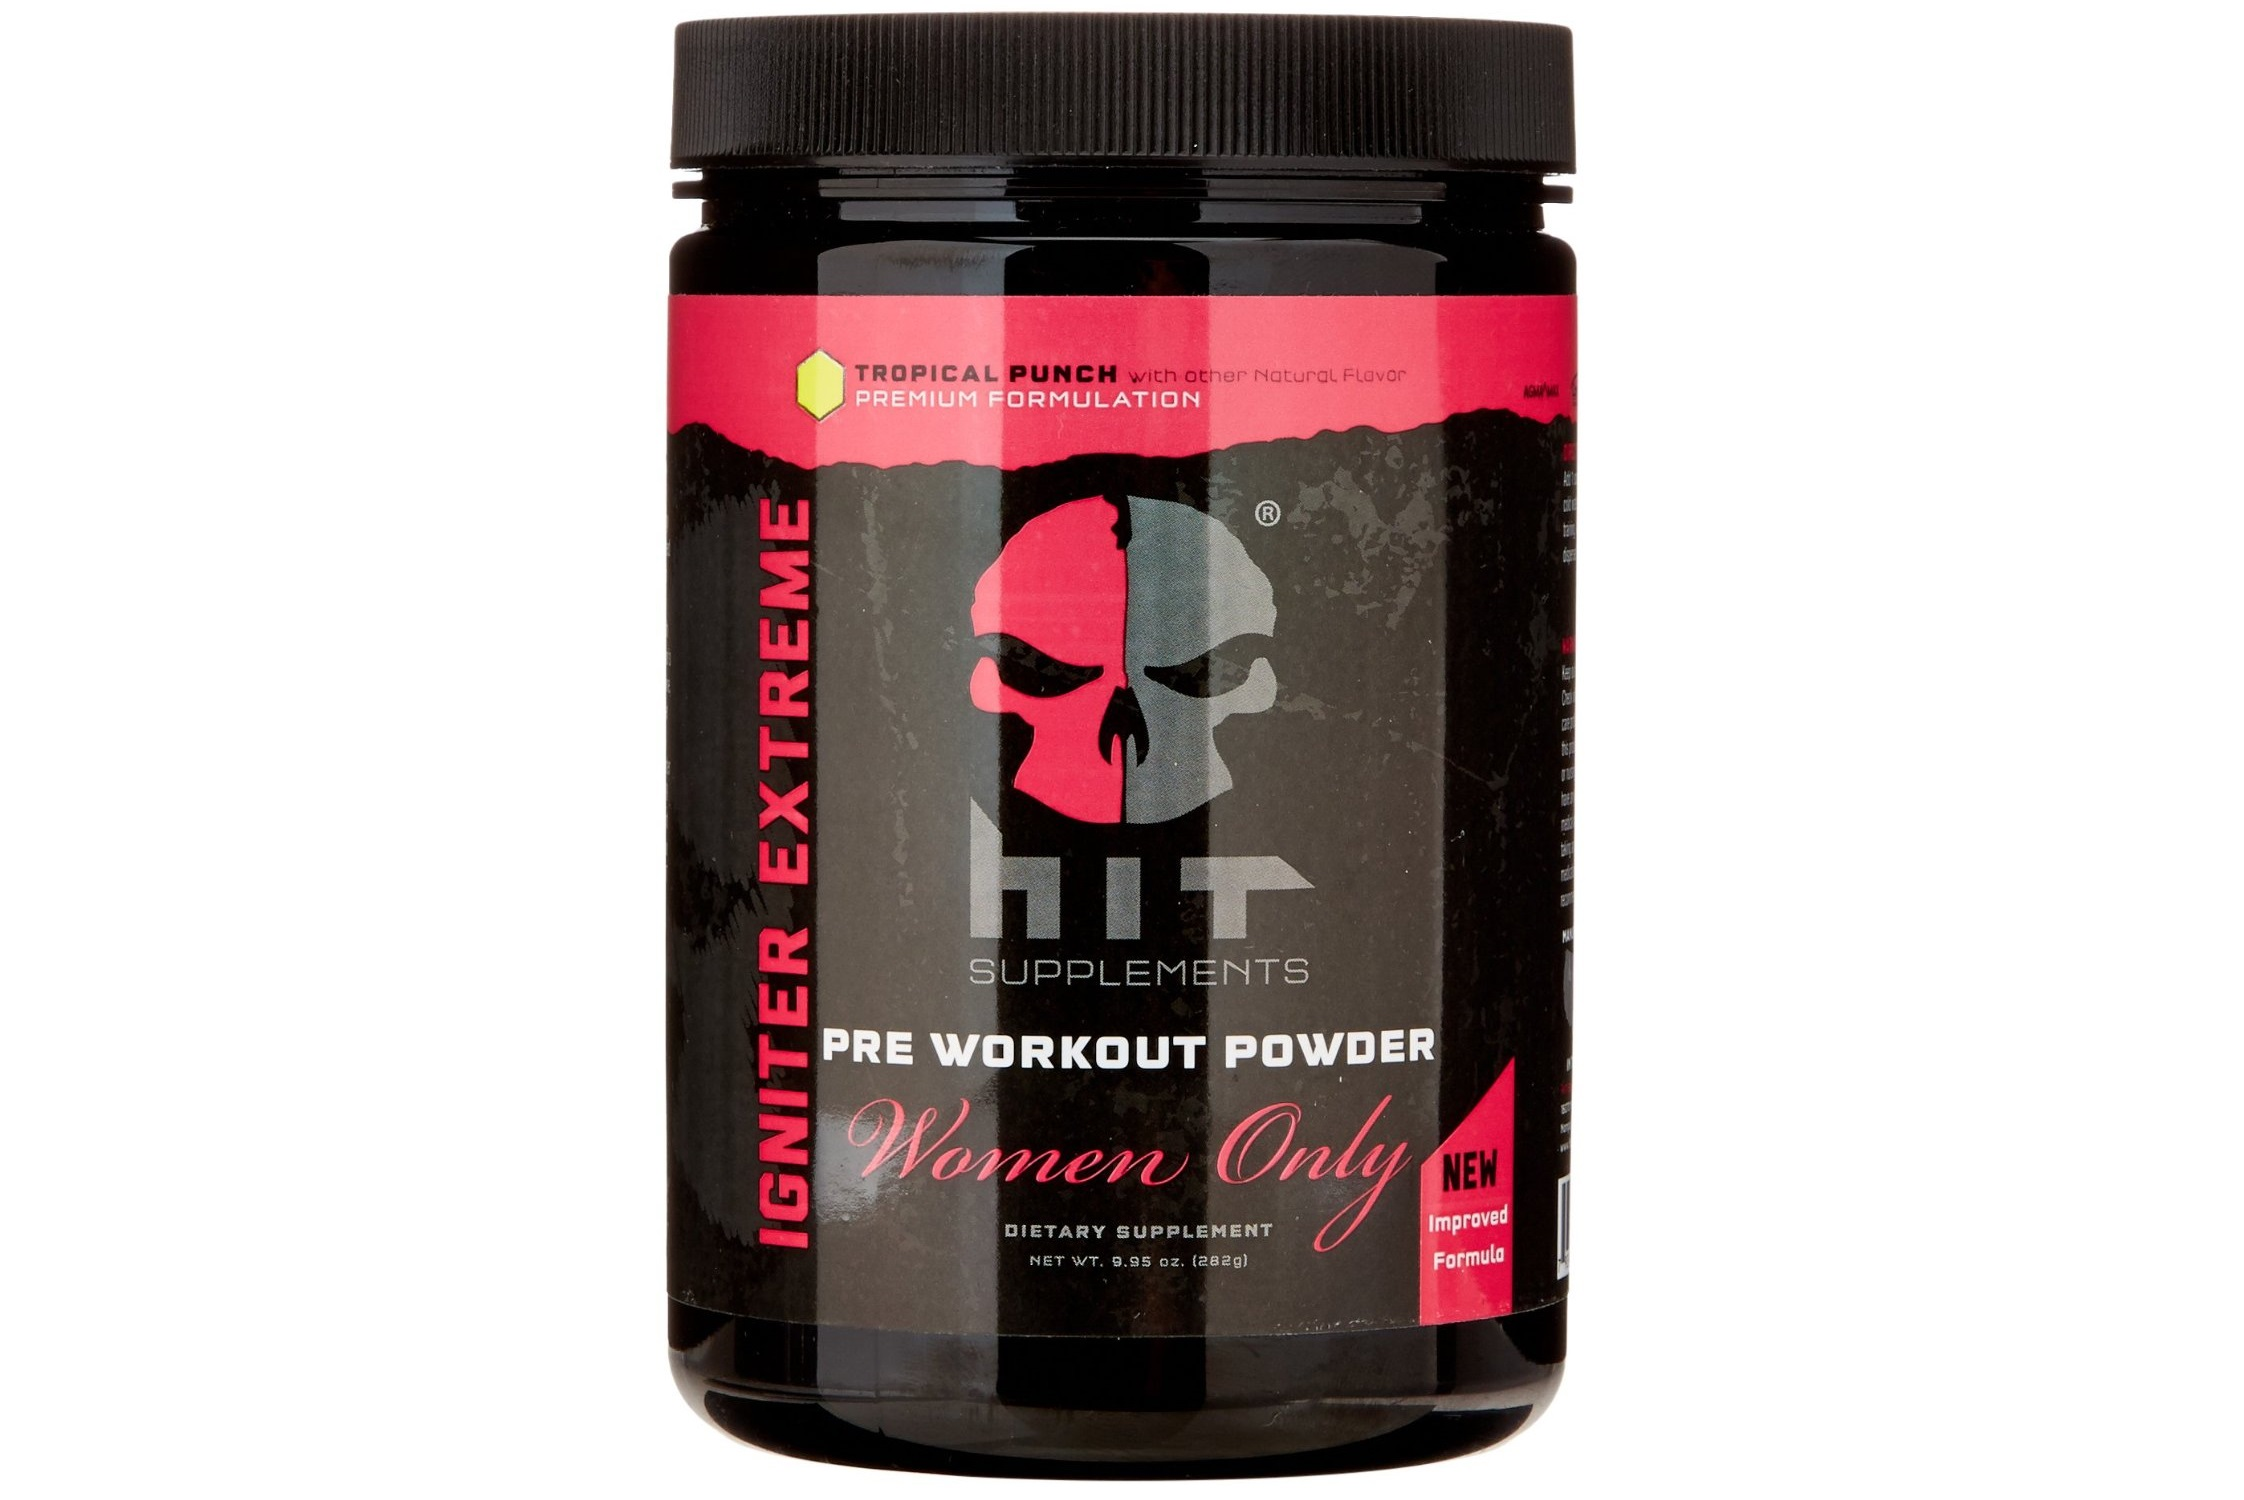 The Best Pre Workout Supplments For Women